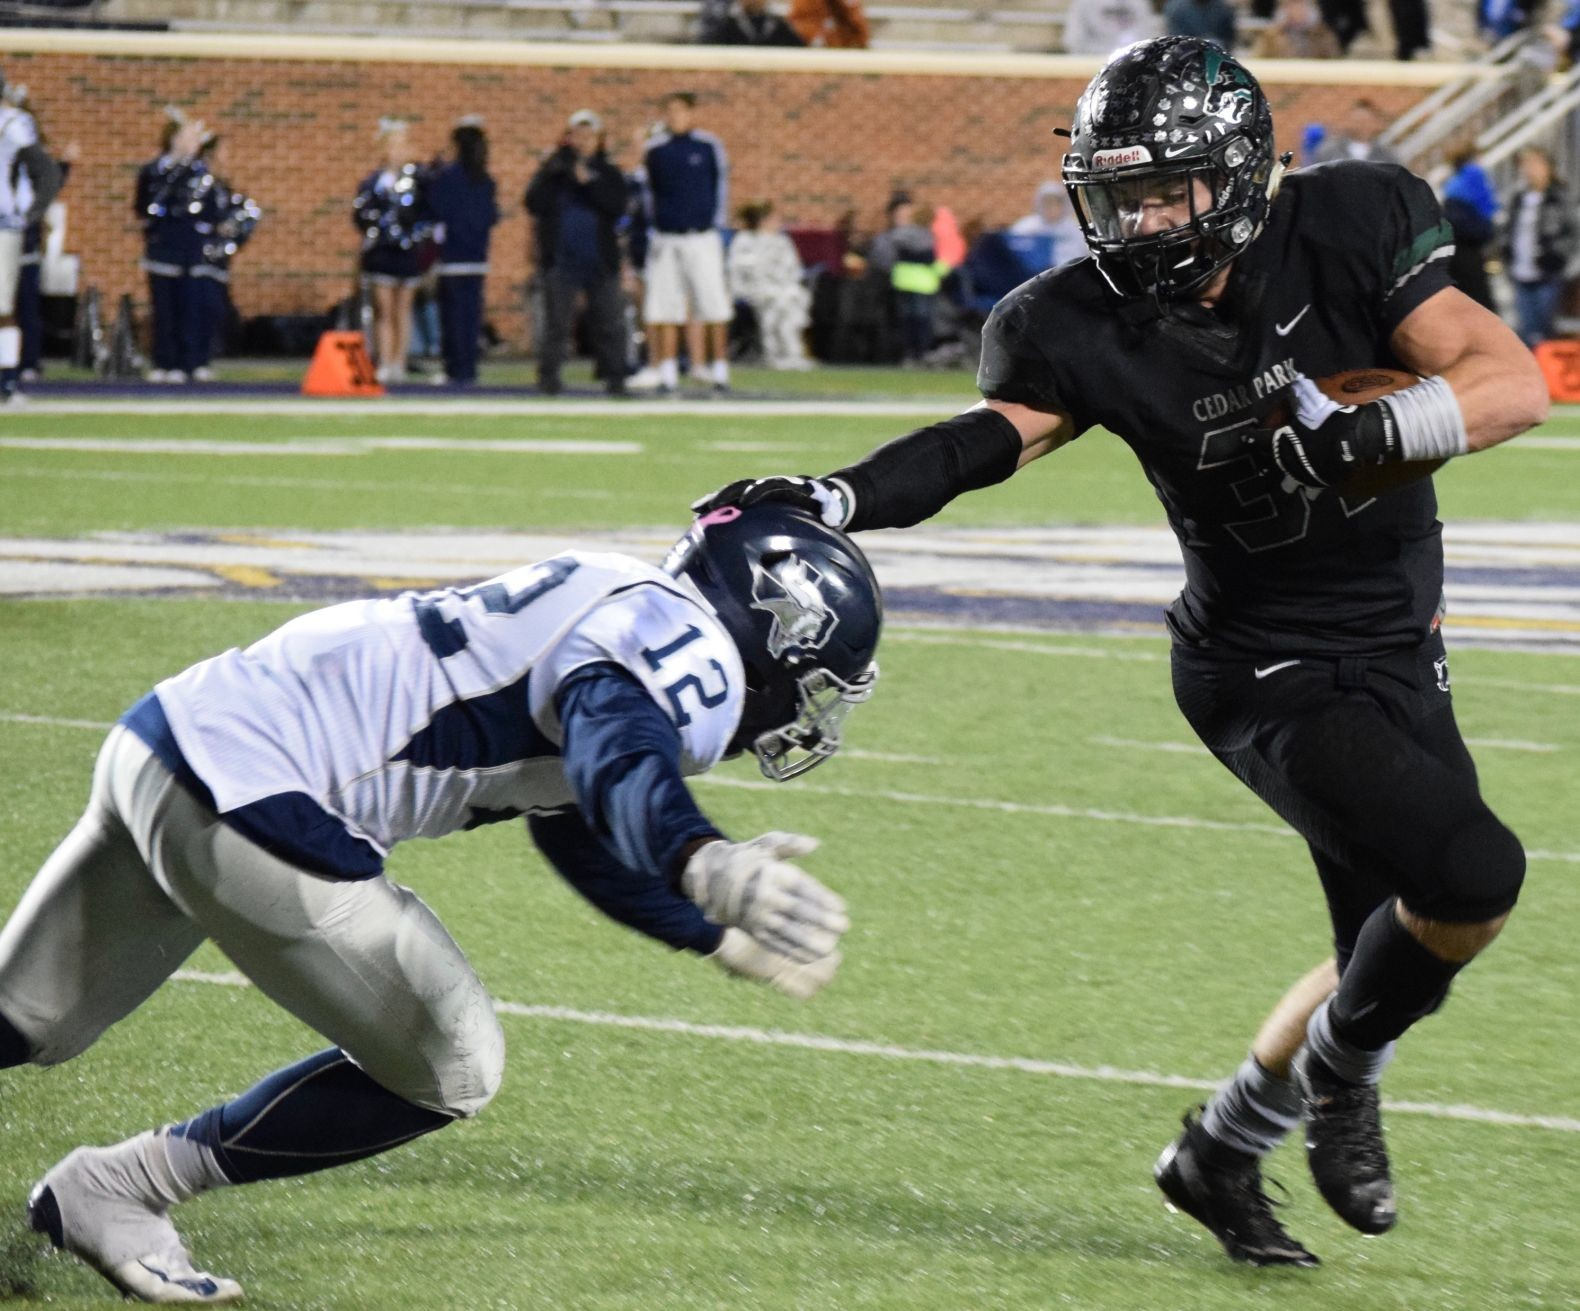 Tyler Lavine carried the ball 44 times for 241 yards and four touchdowns and Cedar Park beat Bryan 42-20 Friday night at Crusader Stadium at Mary Hardin-Baylor.